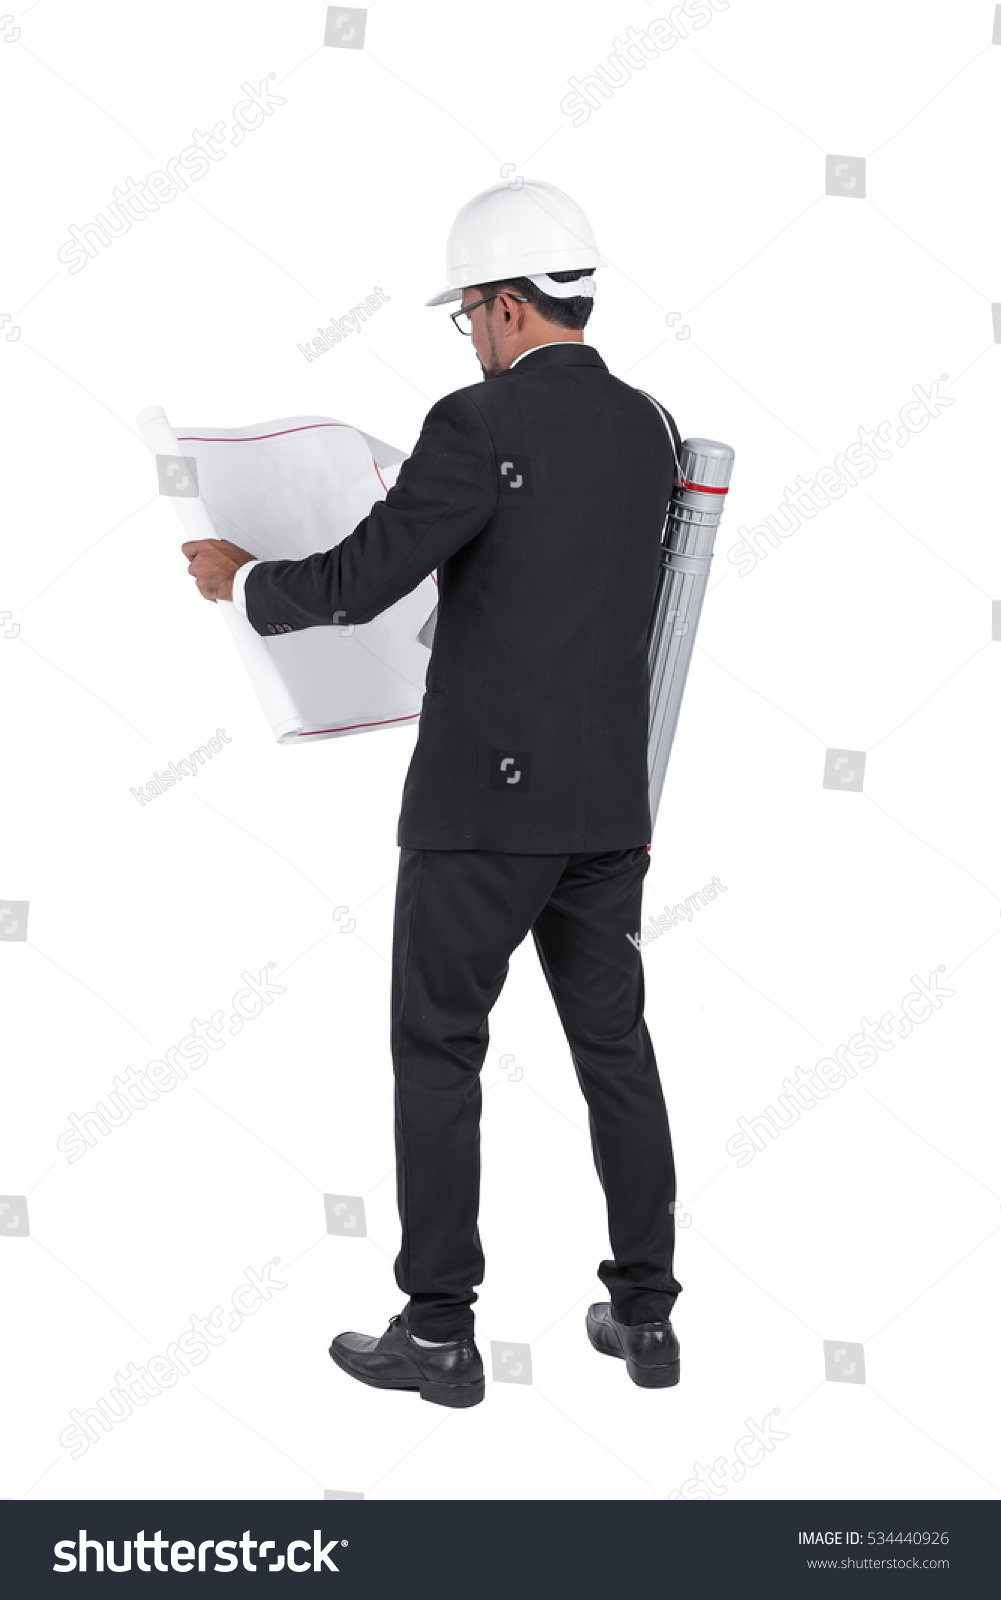 Engineer wear security helmet look blueprint stock photo 534440926 engineer wear security helmet look at blueprint paper construction drawing plan on white background malvernweather Image collections